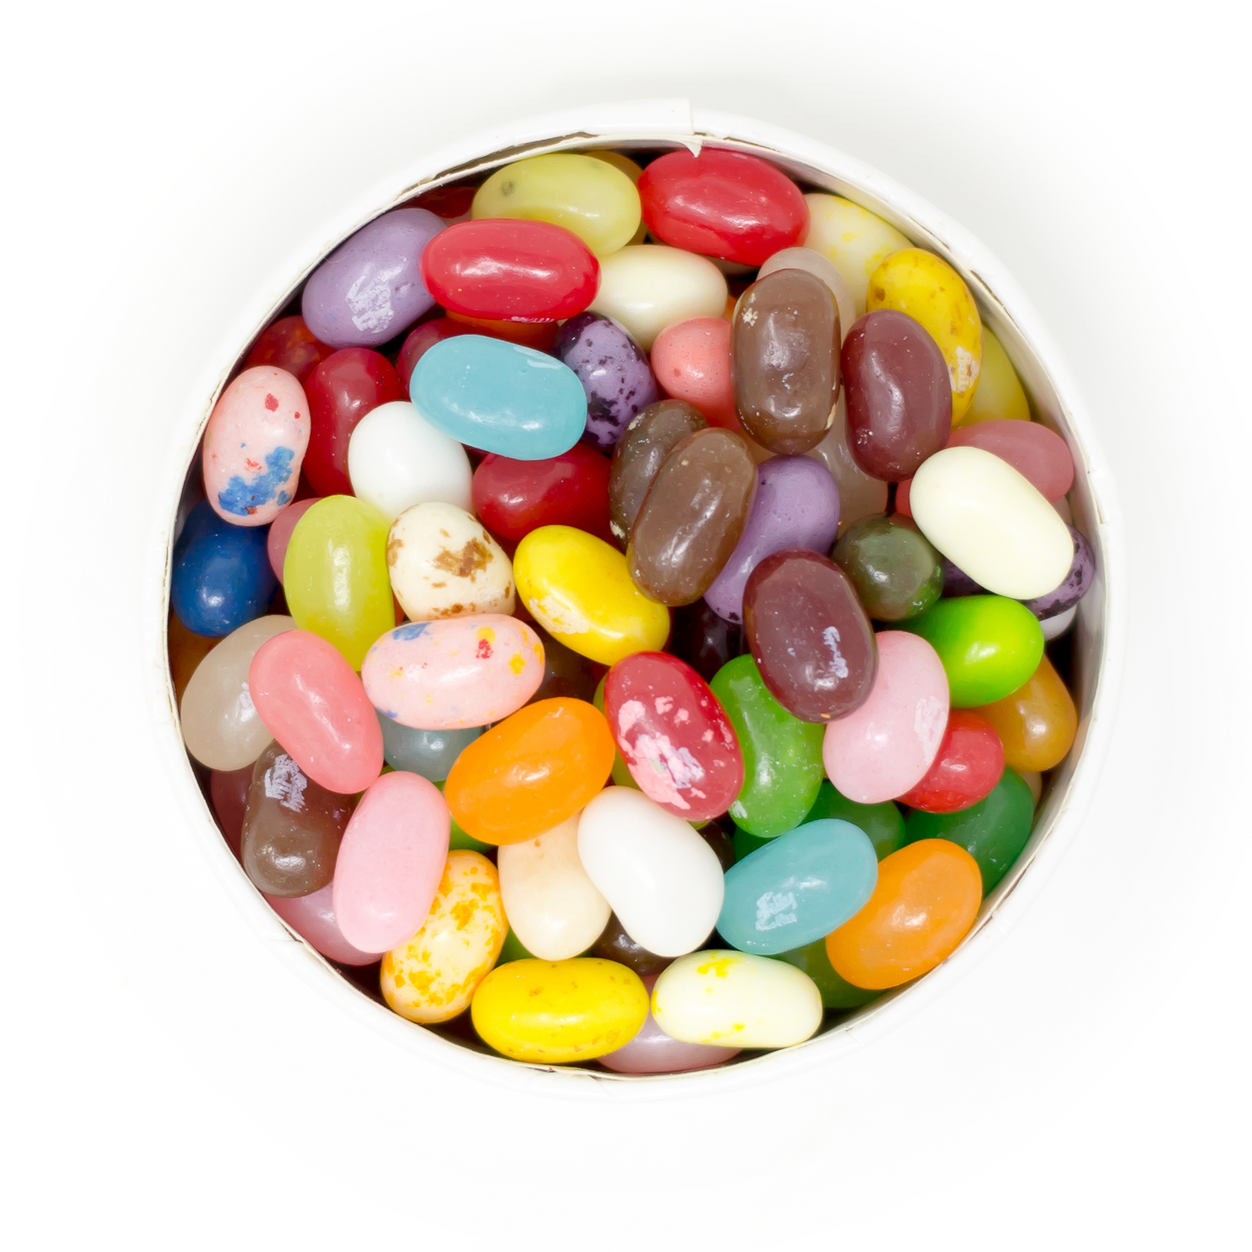 Jelly Belly Snack Pack